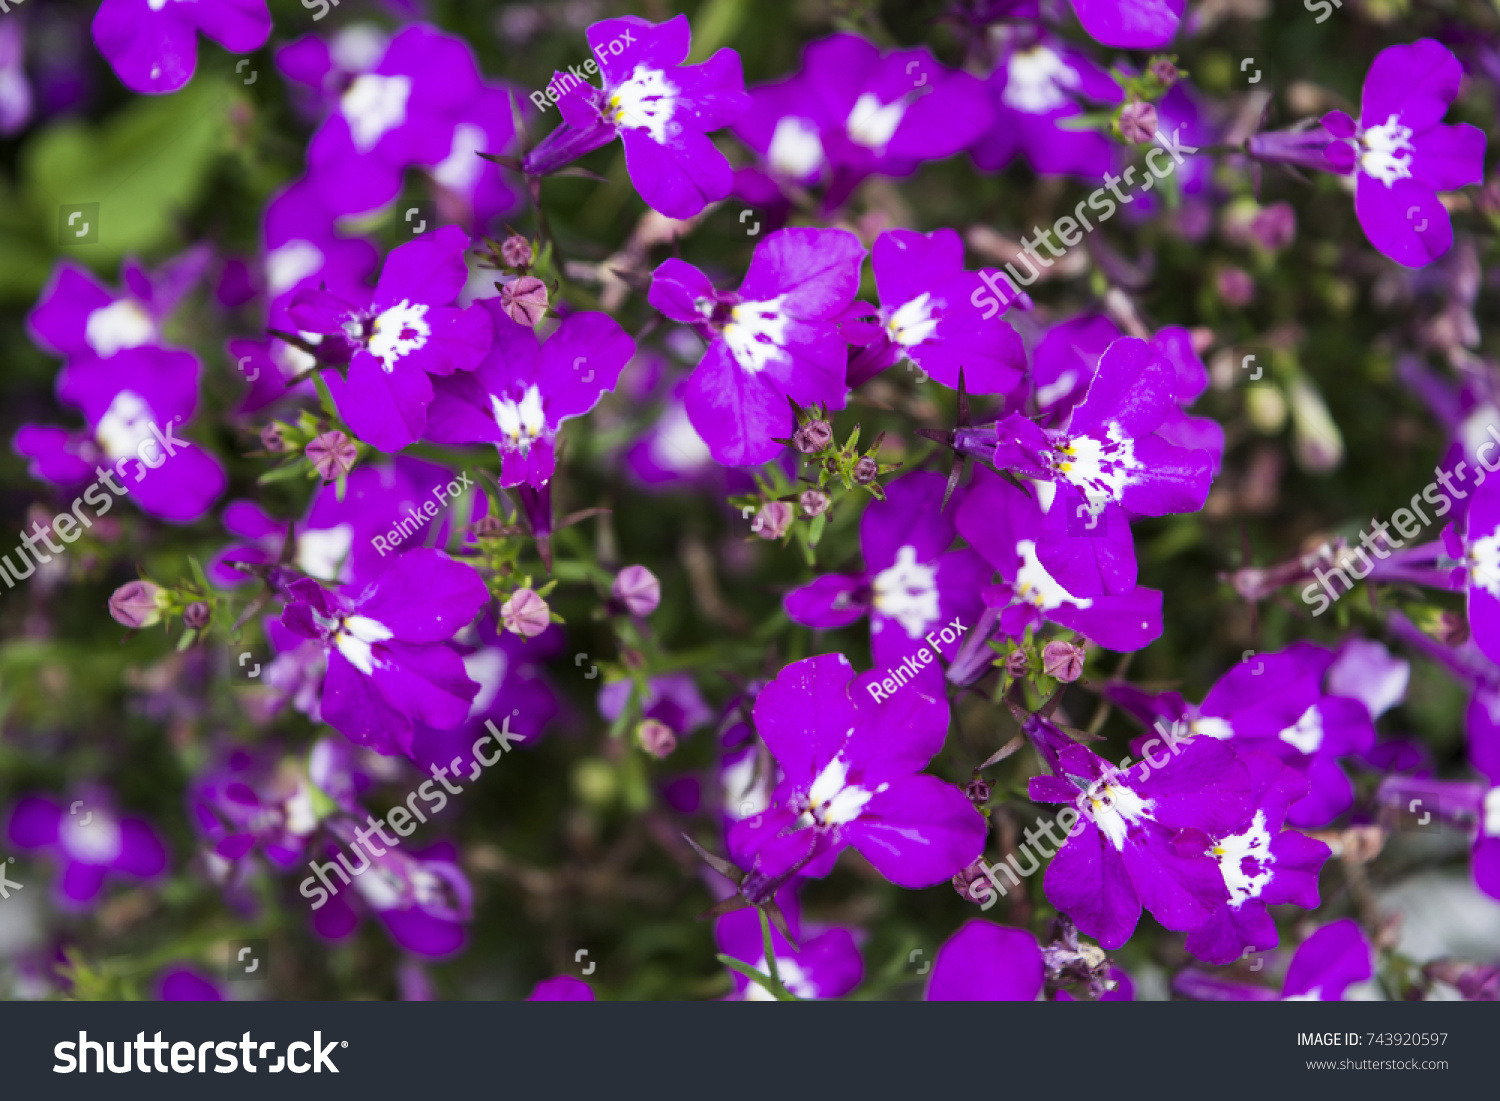 Beautiful purple flowers white color middle stock photo edit now beautiful purple flowers with white color in middle of close up izmirmasajfo